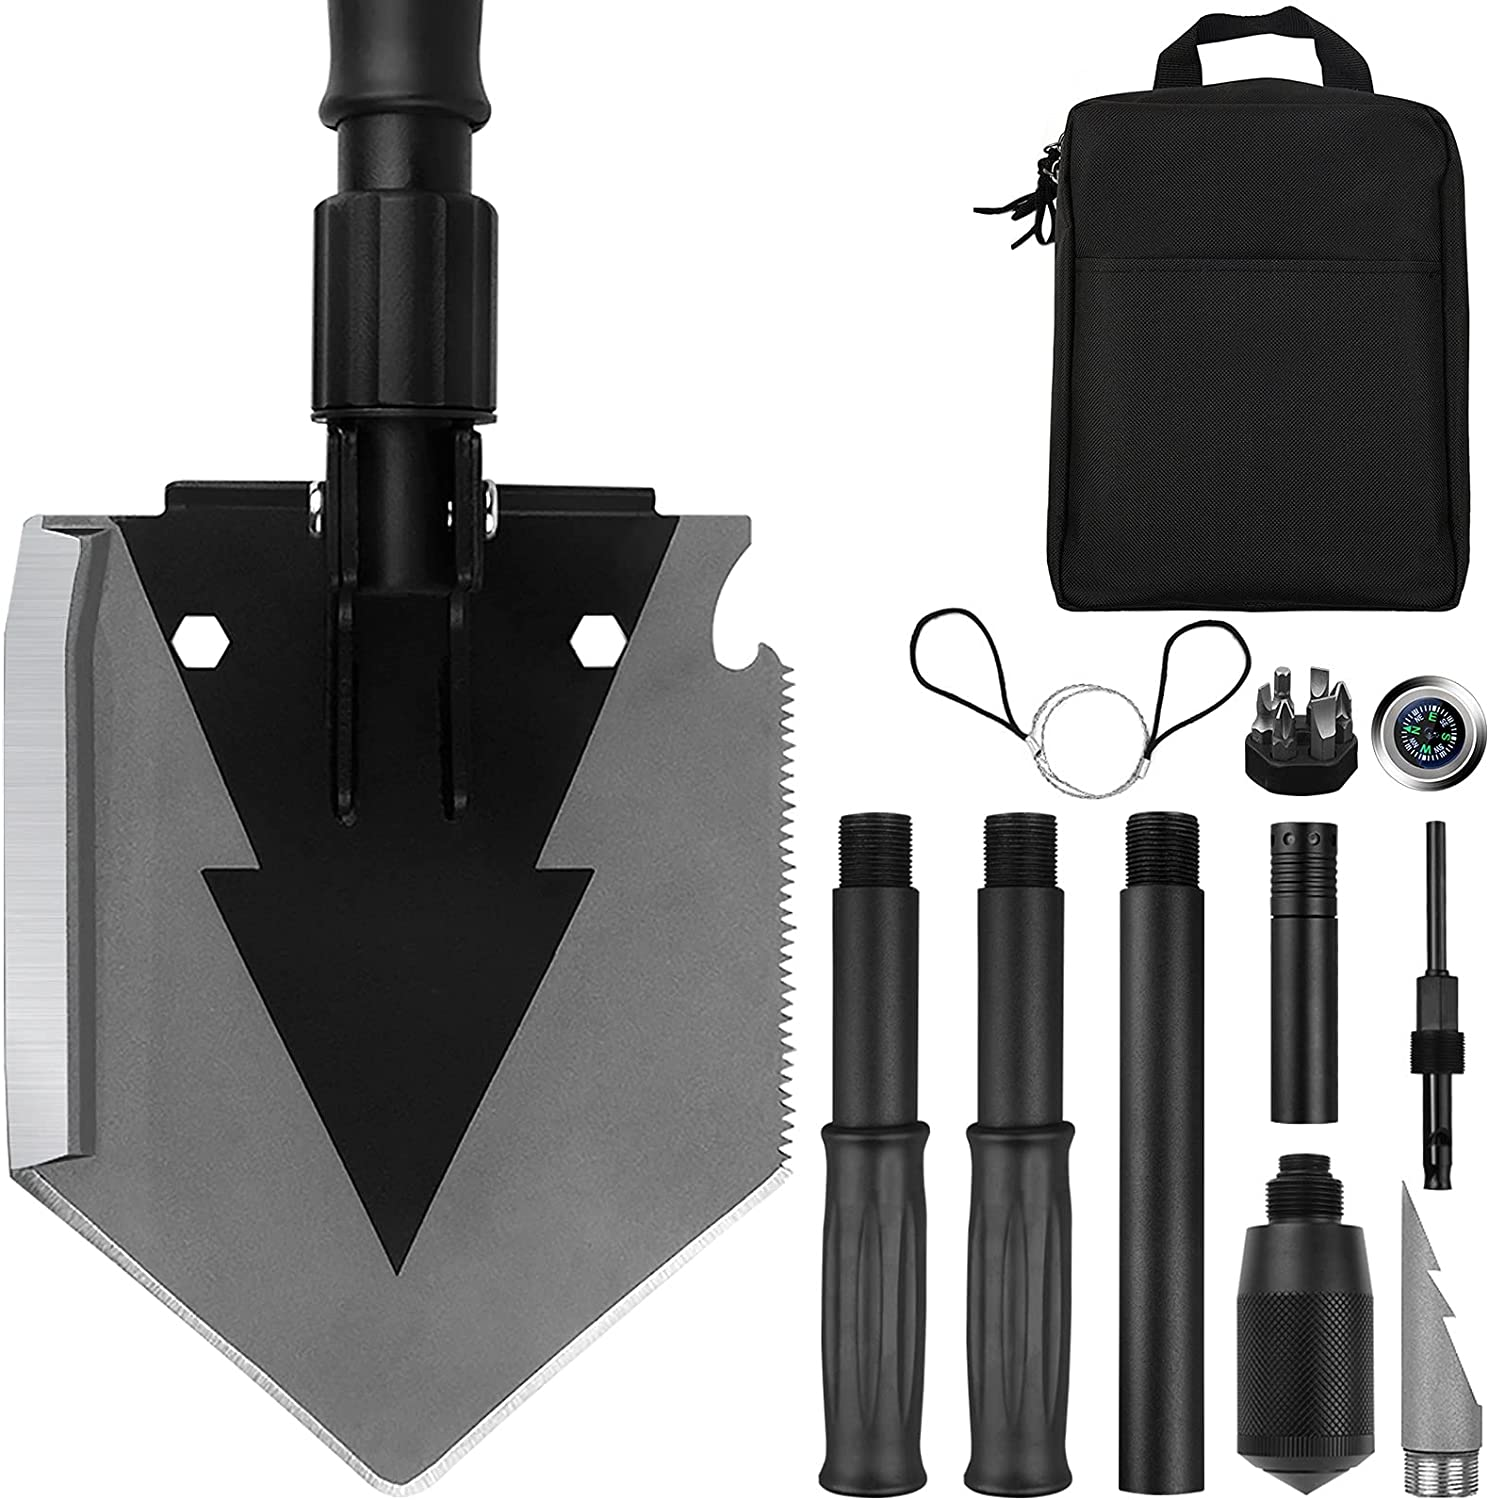 OFFicial shop online shopping Survival Shovel Folding 38 Tactical inch Gear Military